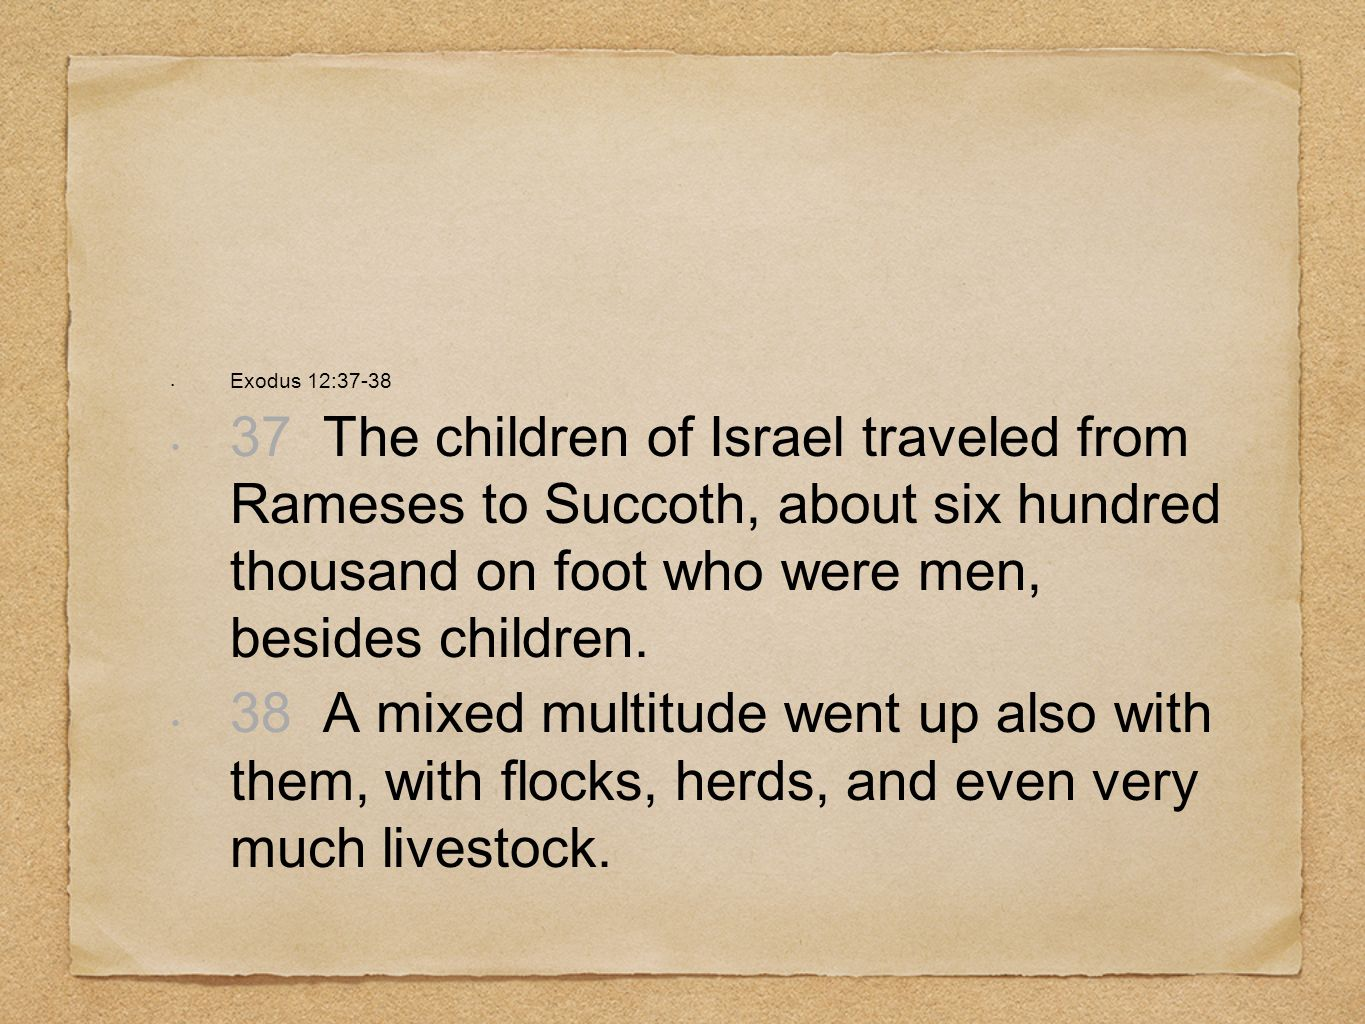 Exodus 12: The children of Israel traveled from Rameses to Succoth, about six hundred thousand on foot who were men, besides children.